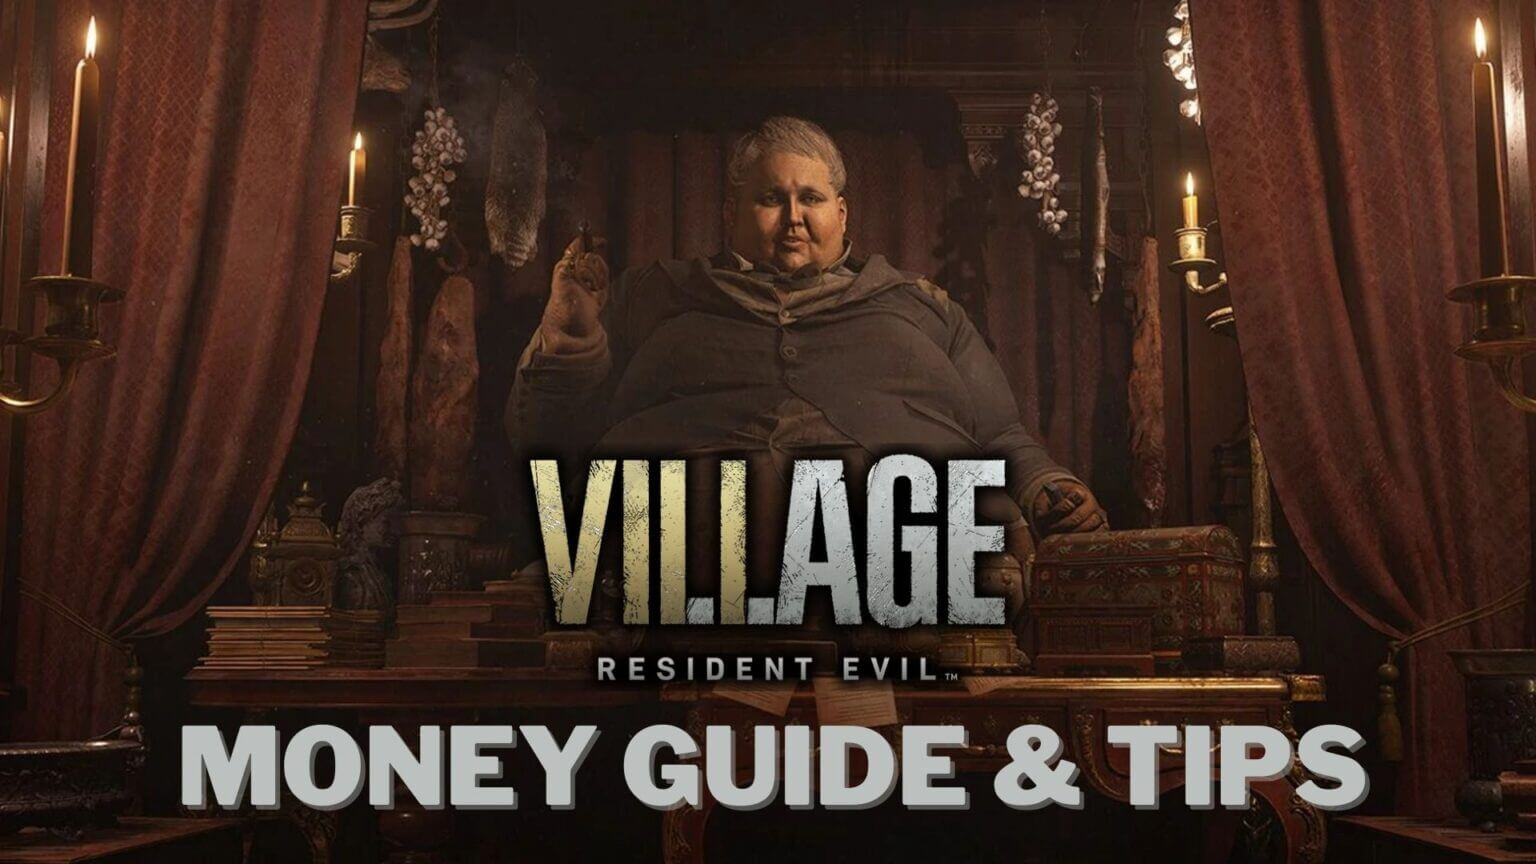 Resident-Evil-Village-How-to-make-money-fast-guide-best-tips-FEATURED-1536x864